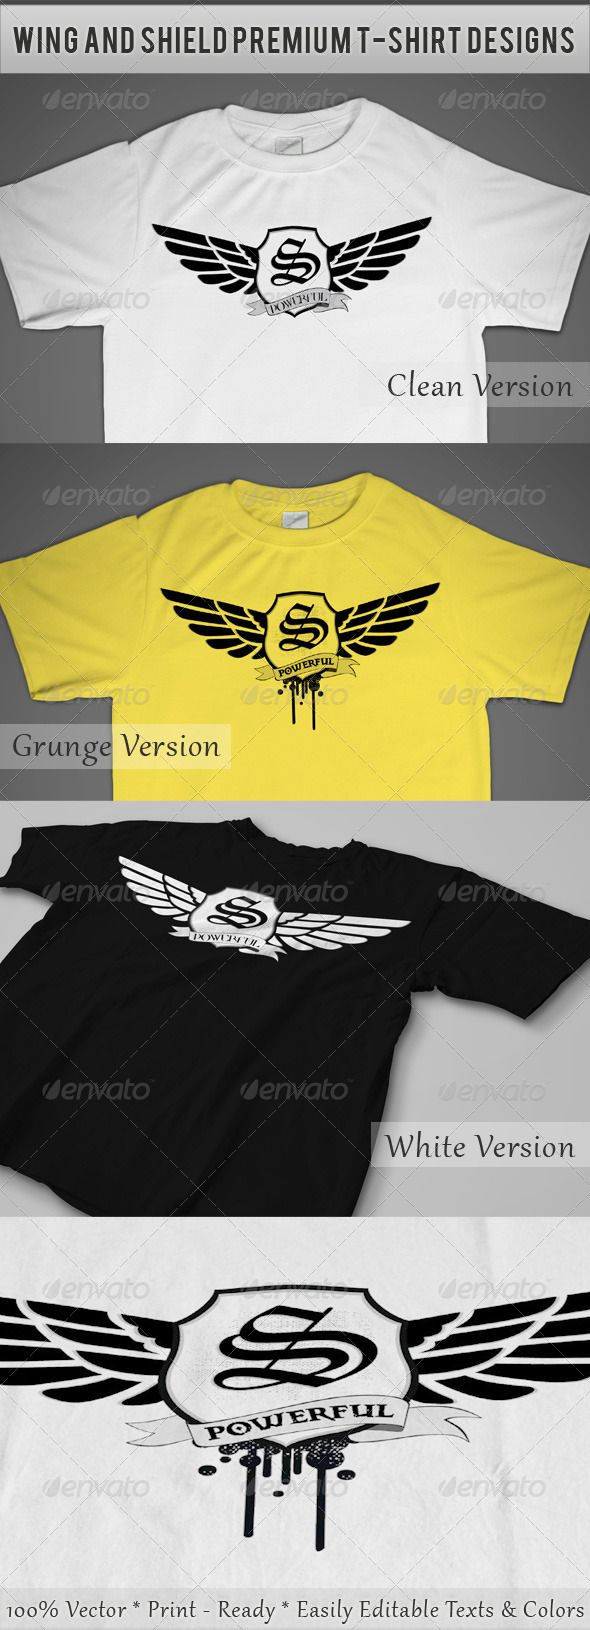 Wing and Shield Premium T-Shirt Designs - DOWNLOAD NOW